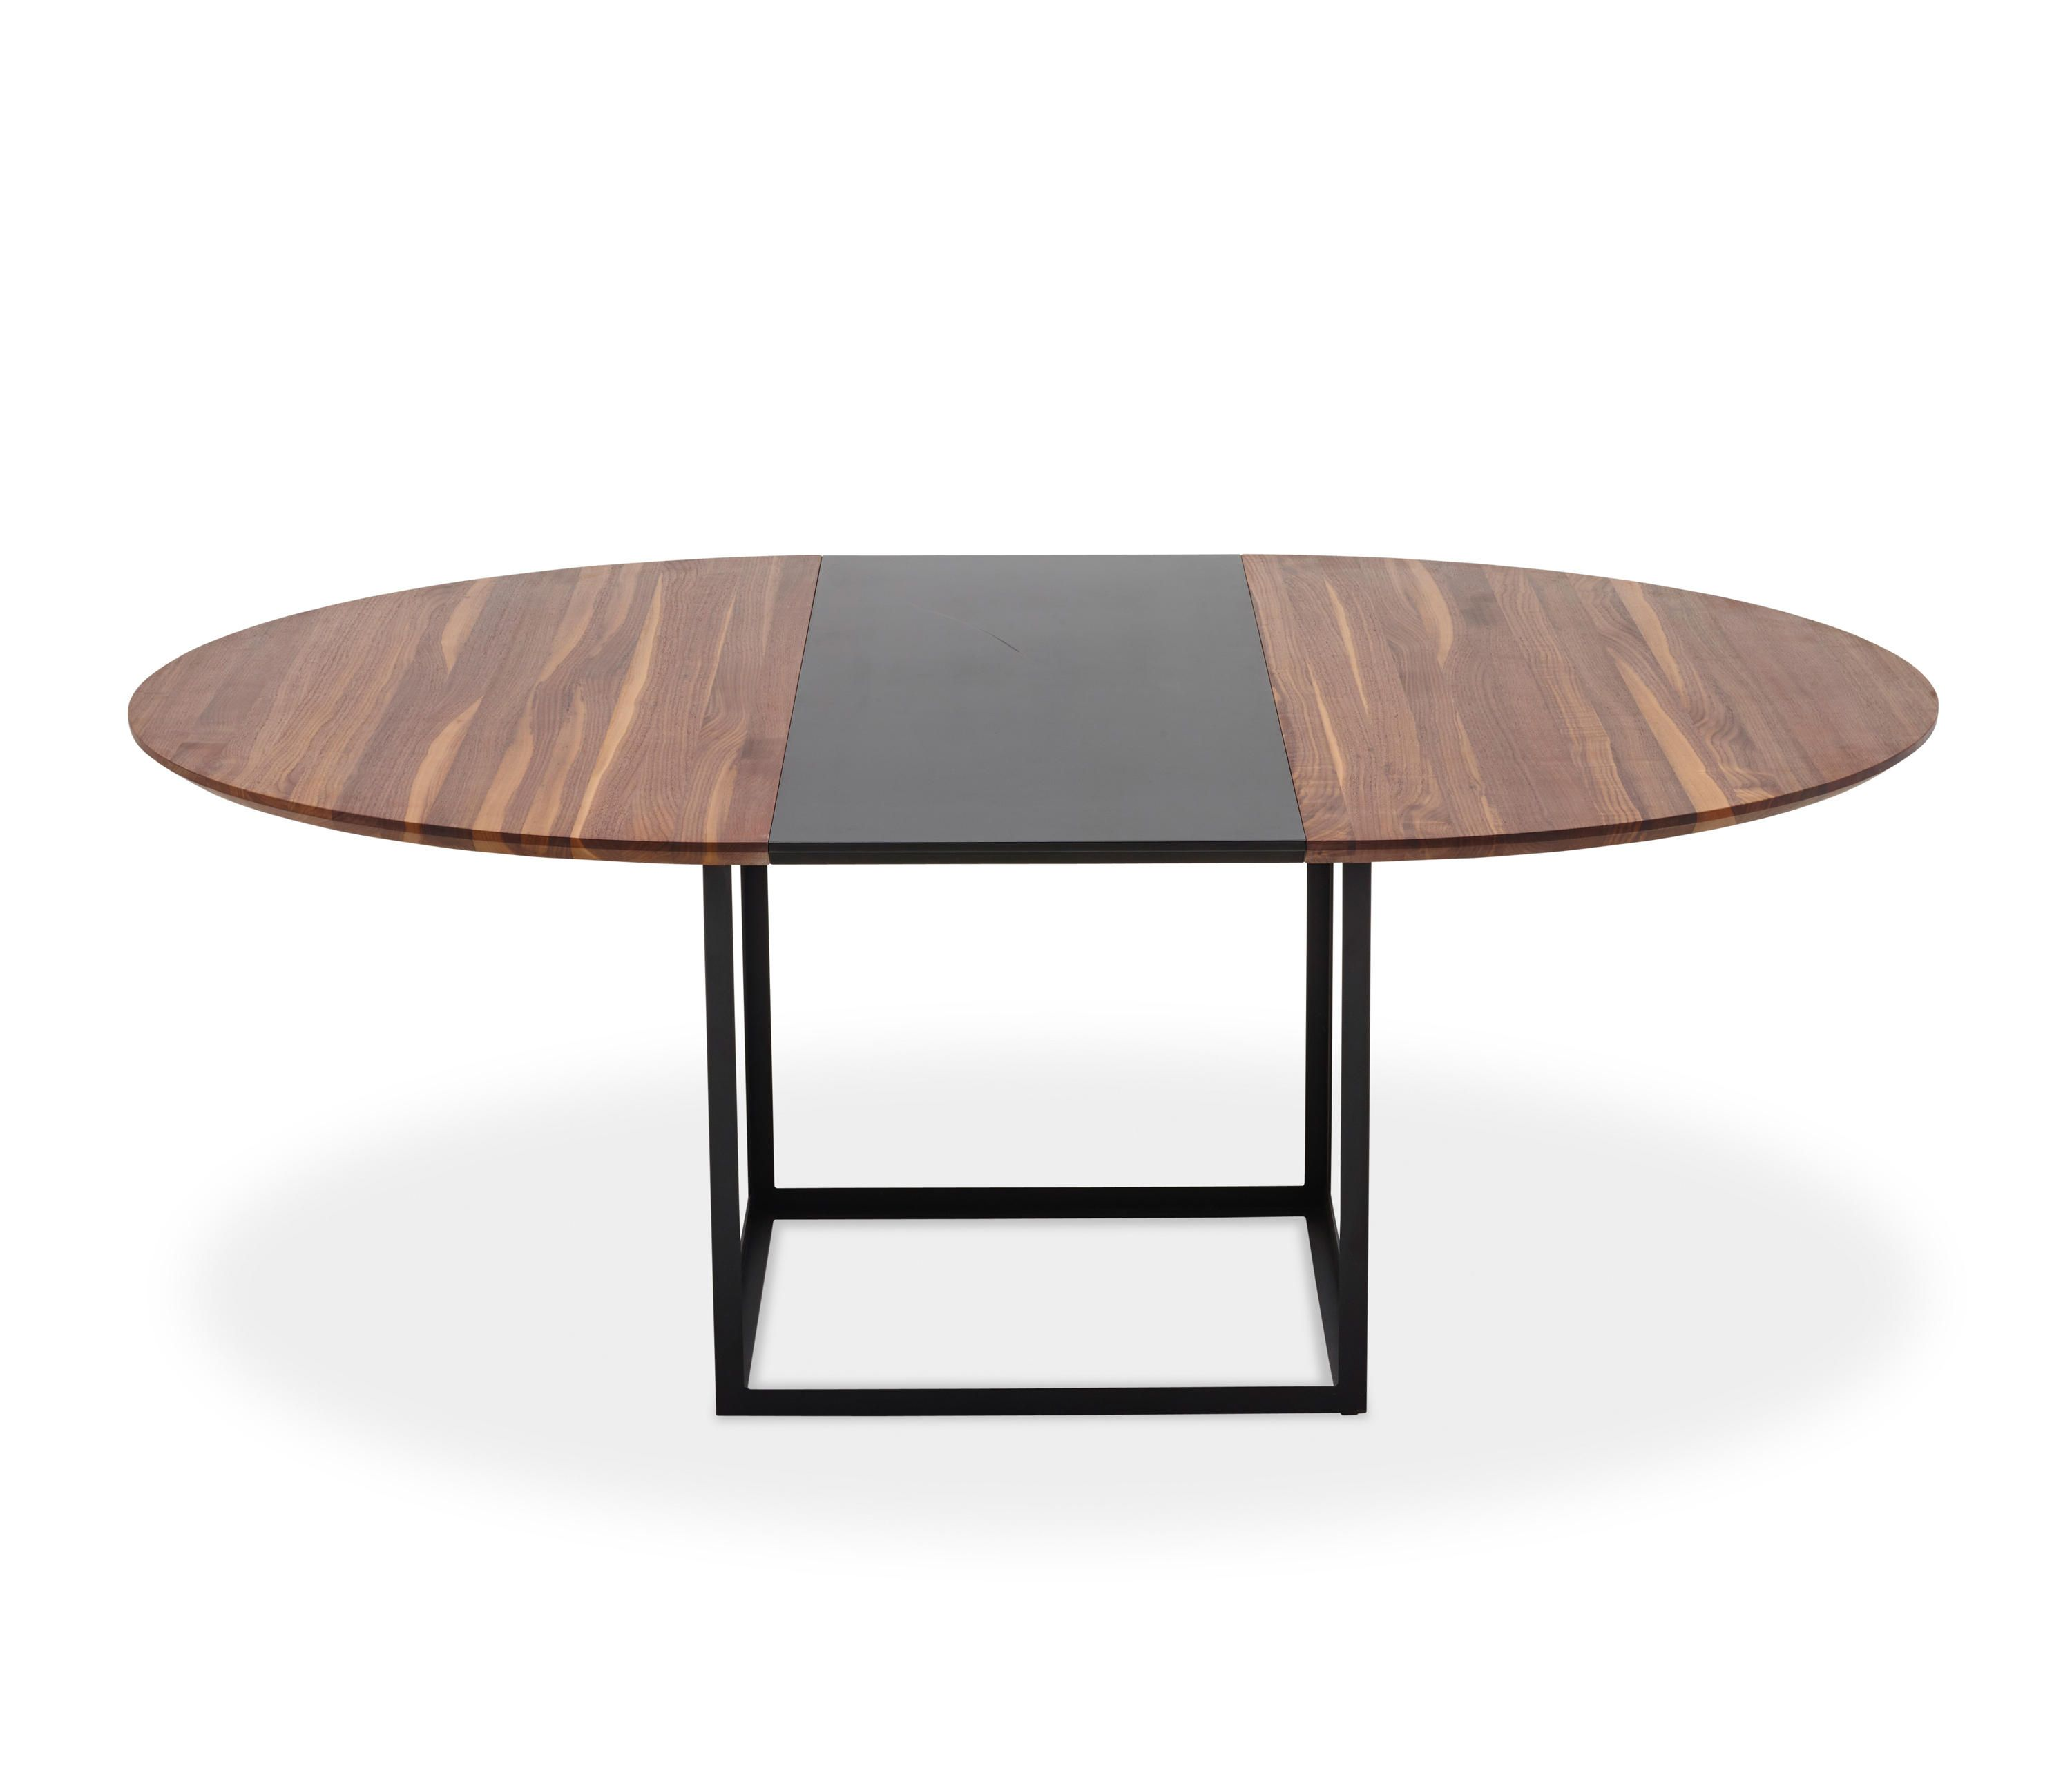 Jewel Table Round Version Dining Tables From Dk3 Architonic